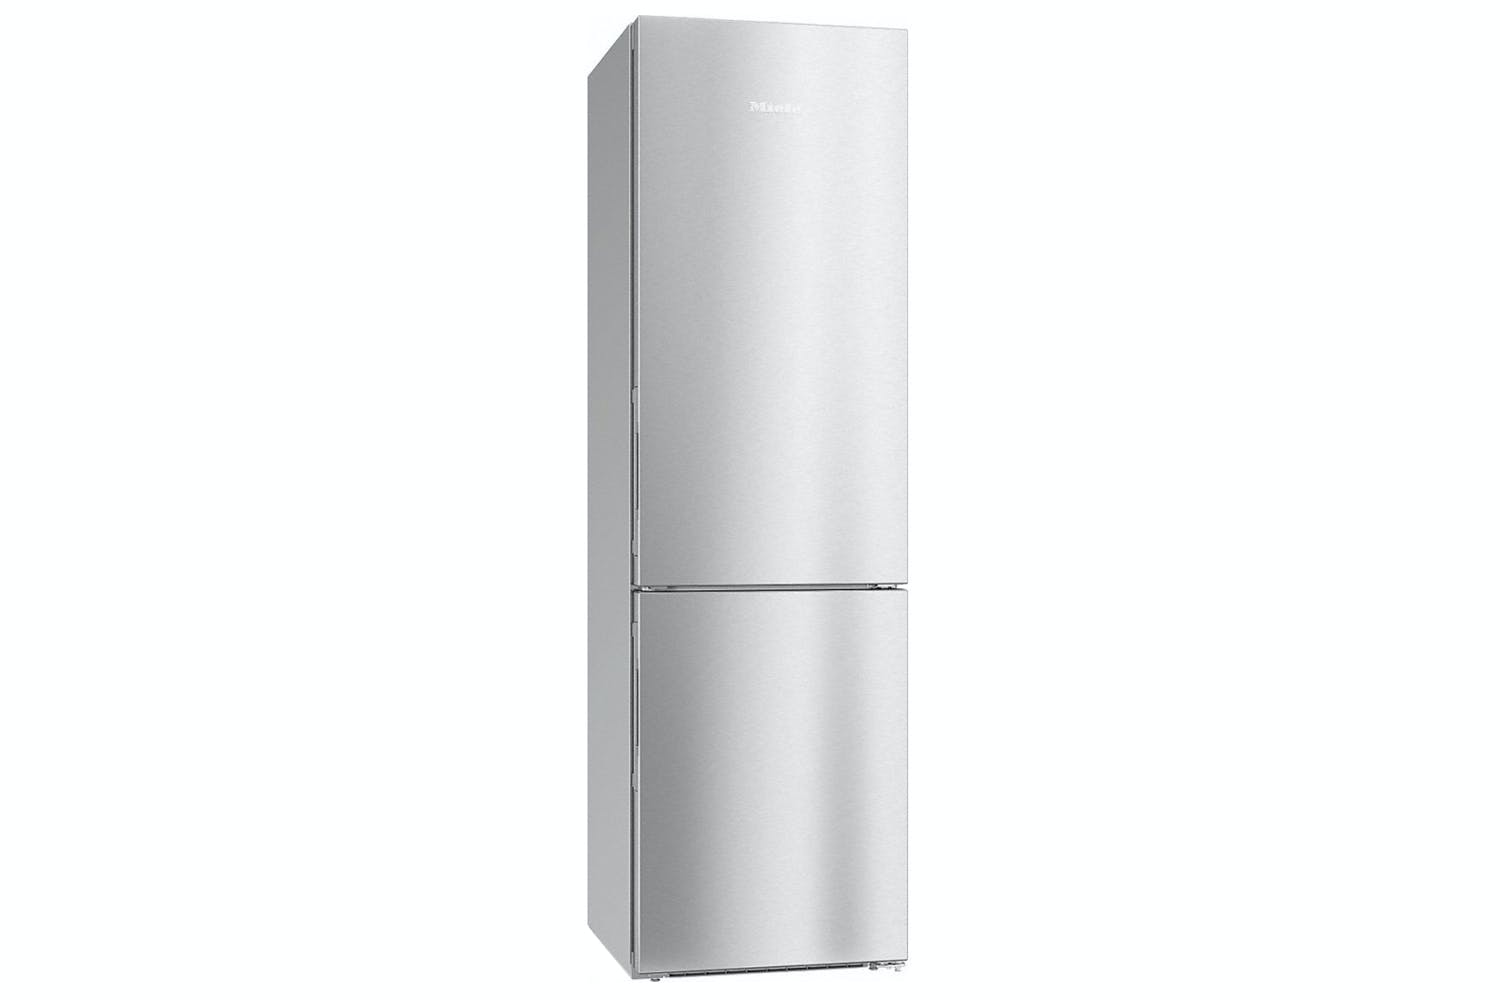 KFN 29283 D edt/cs  XL freestanding fridge freezer   with Perfect fresh and Frost free for longer freshness and highest convenience